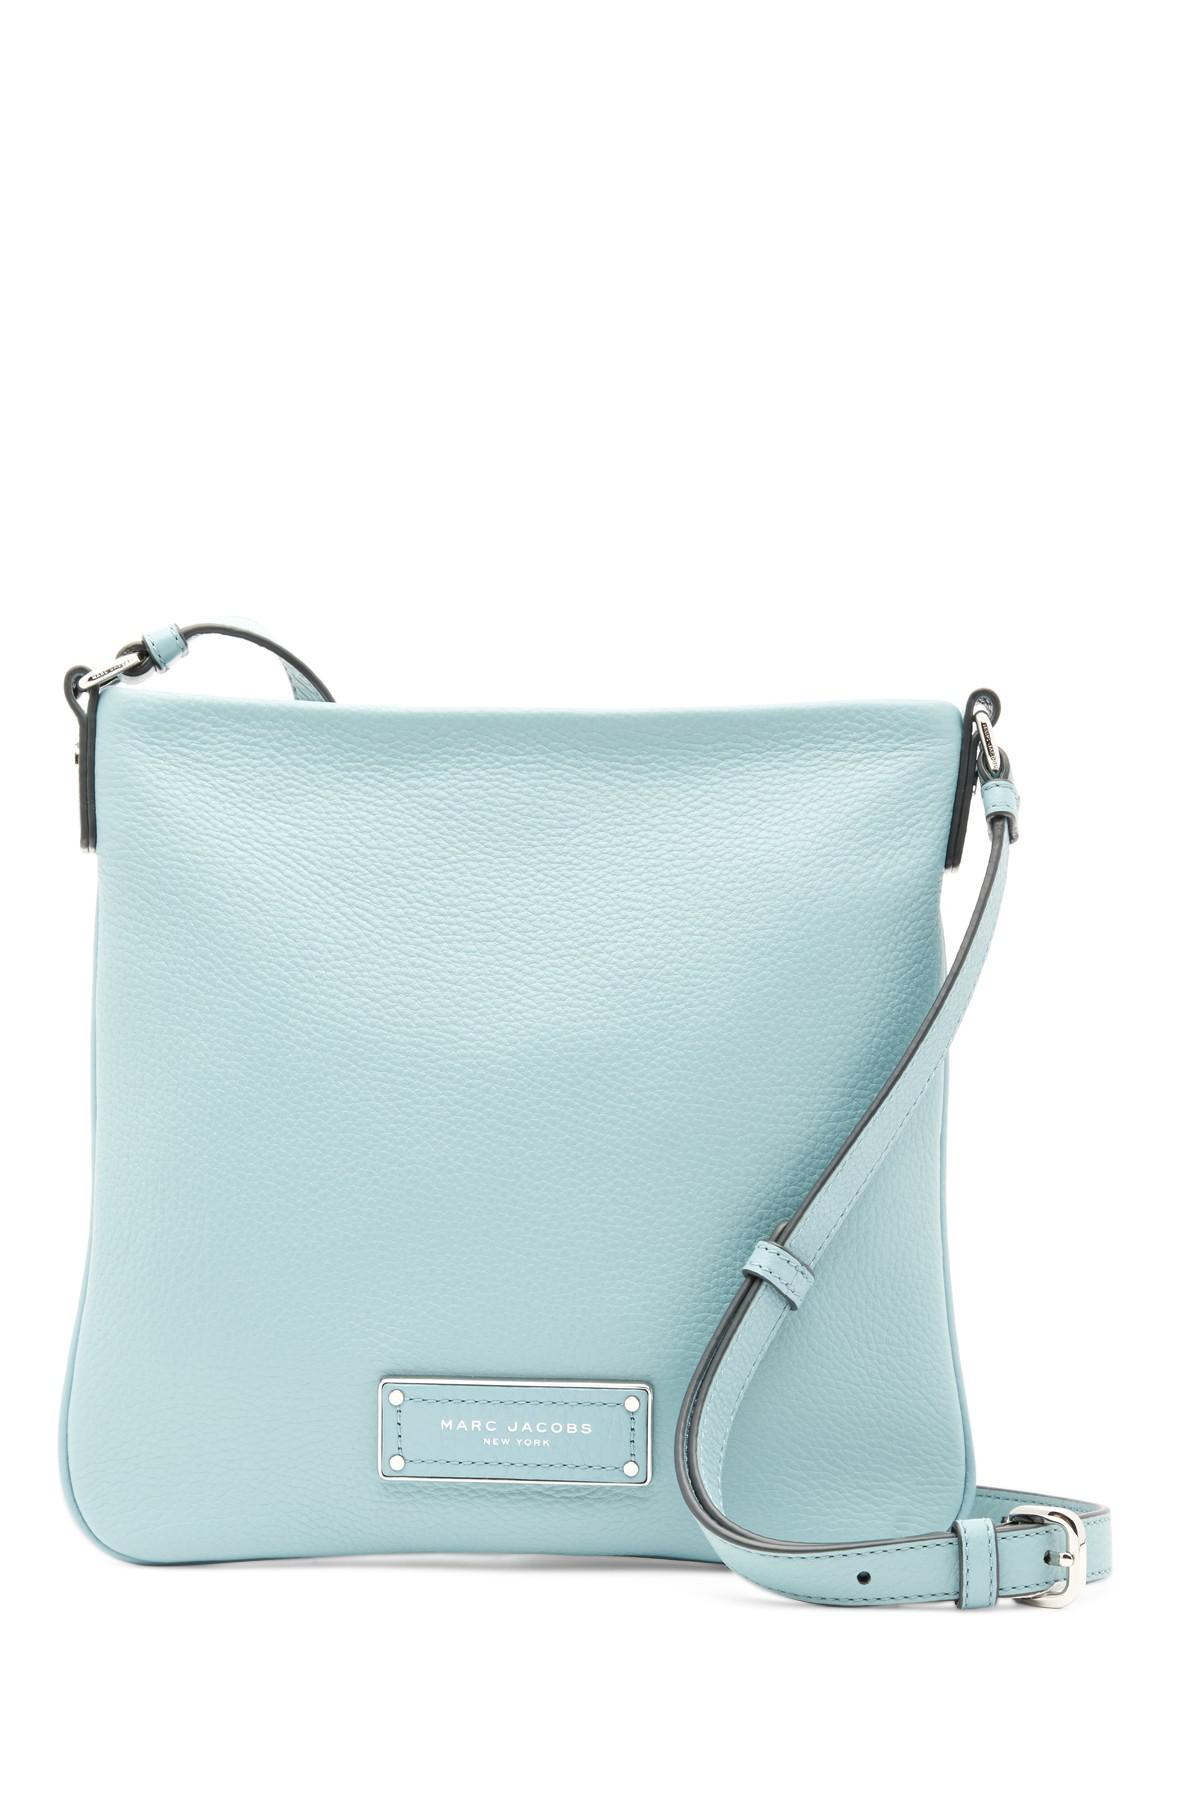 bd1f4d0a4cb88 Lyst - Marc Jacobs Too Hot To Handle Sia Leather Crossbody Bag in Blue